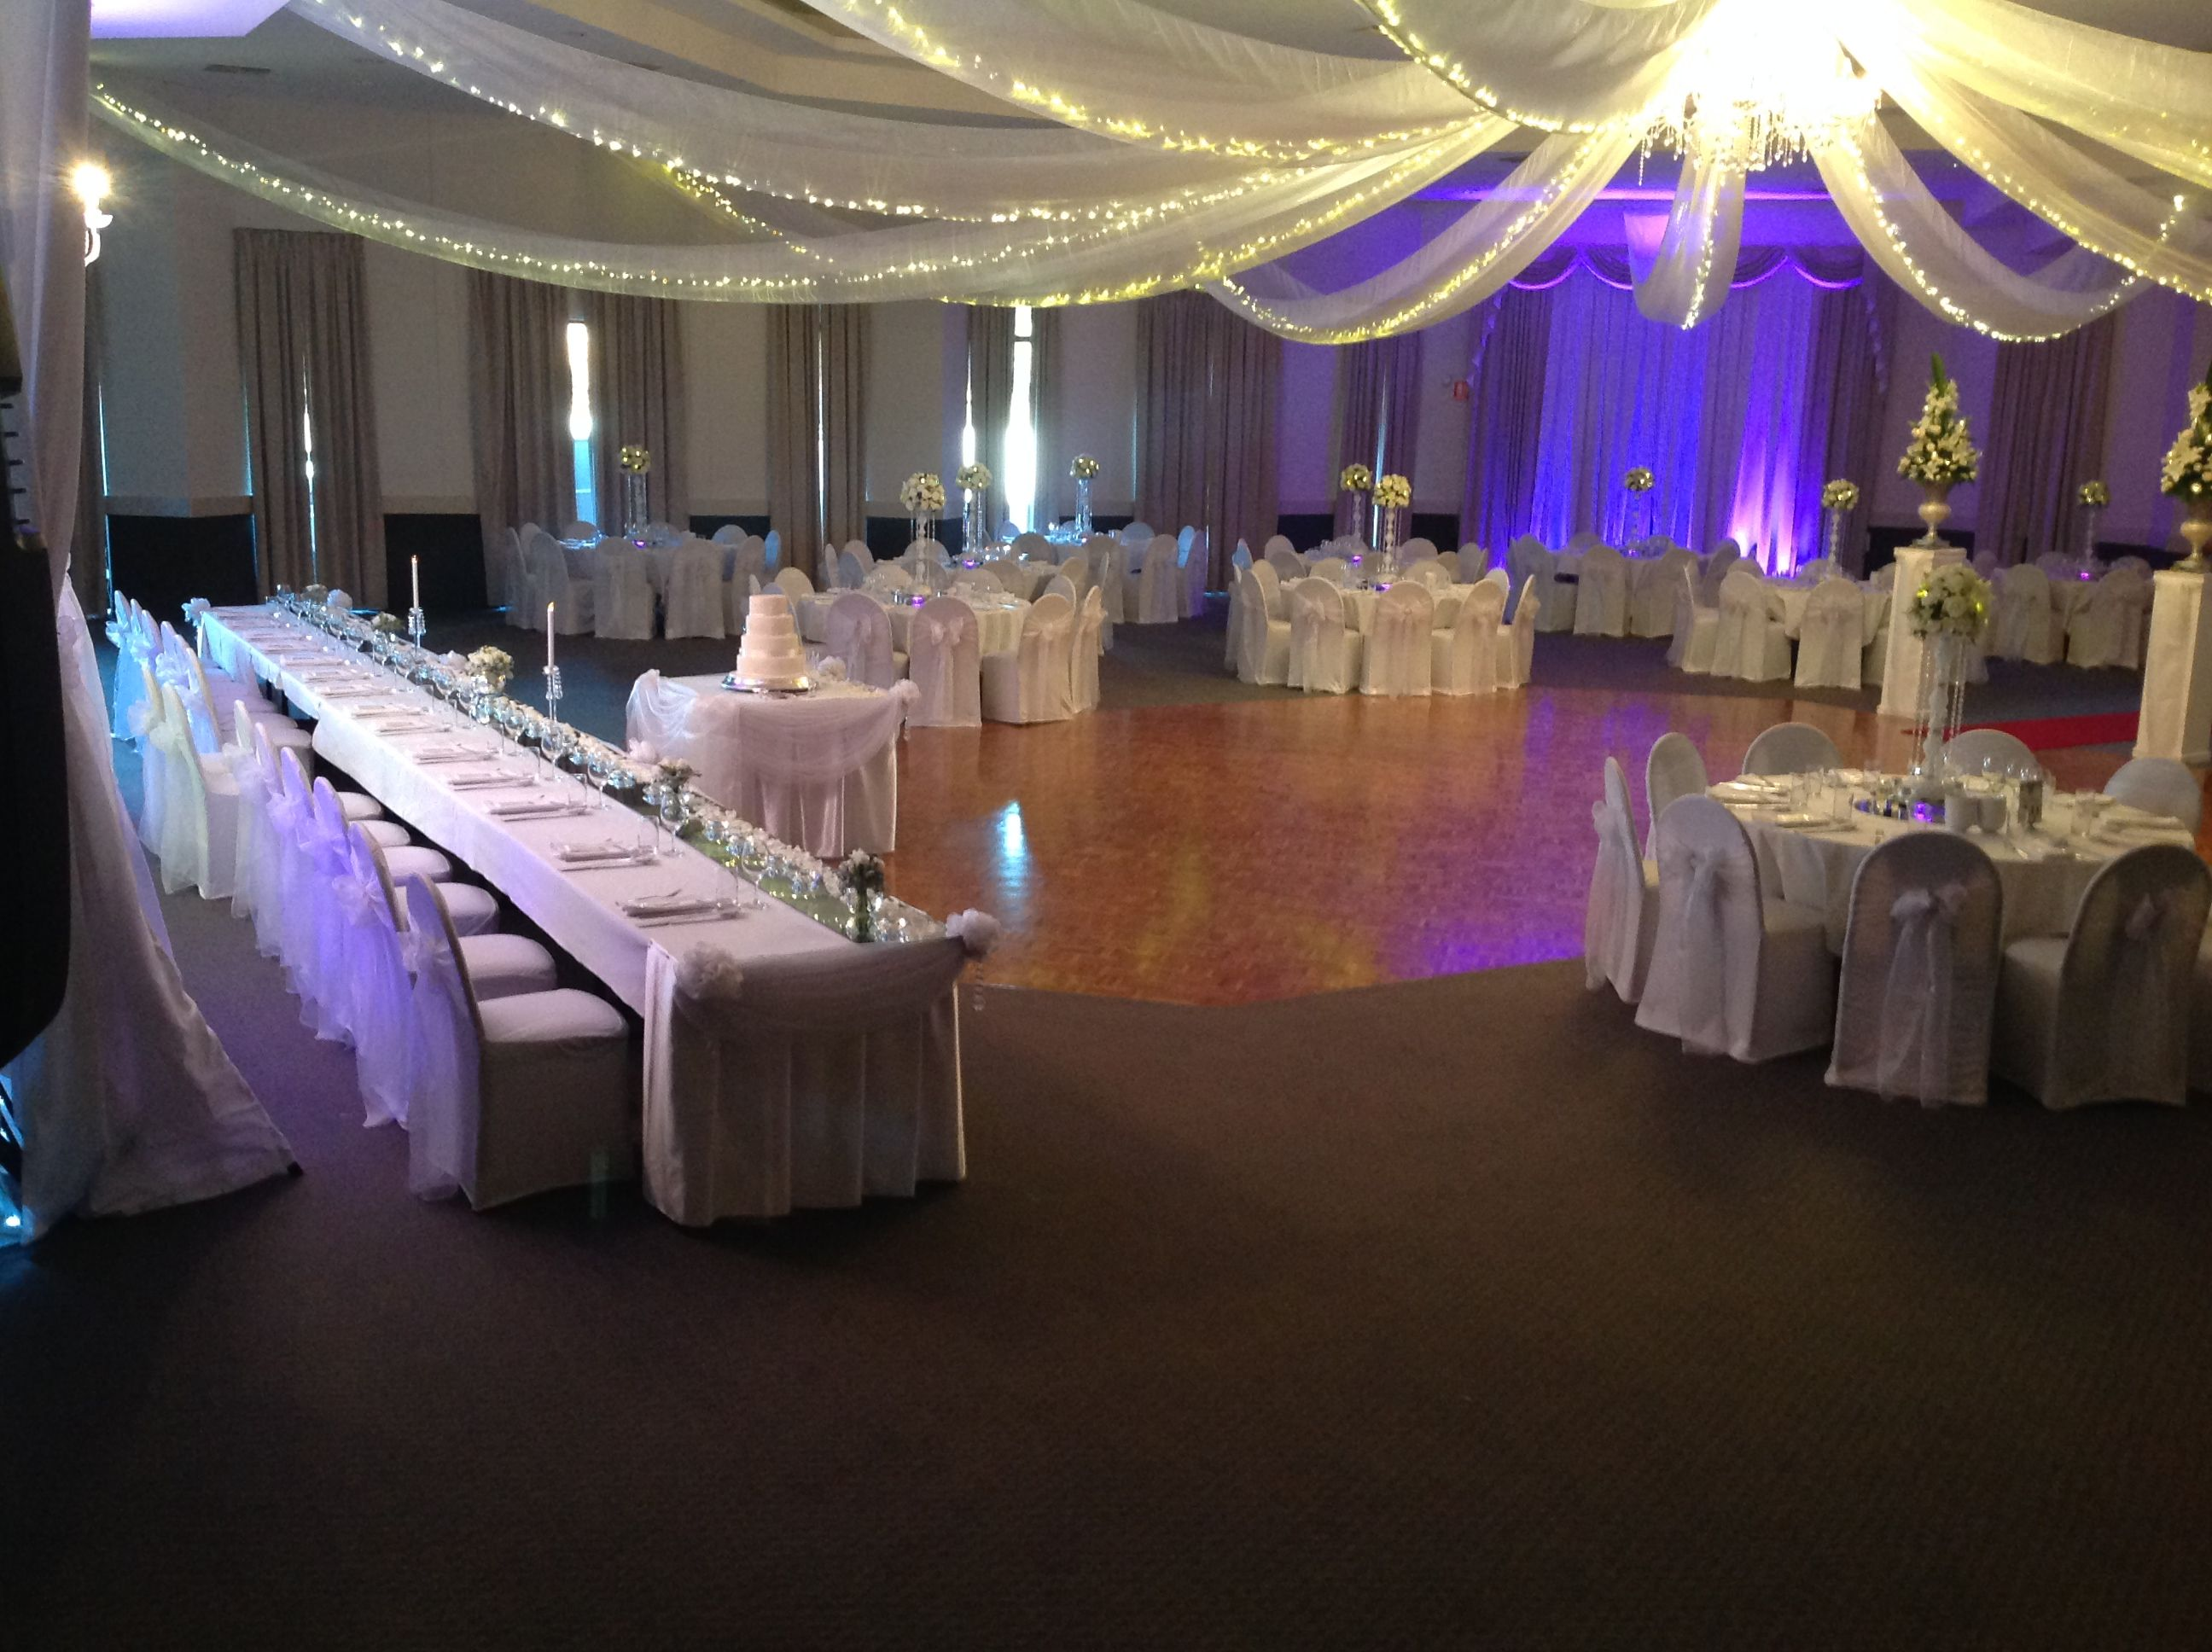 Wedding reception decoration with ceiling swags fairy lights wedding reception decoration with ceiling swags fairy lights chair covers with sashes bridal junglespirit Image collections